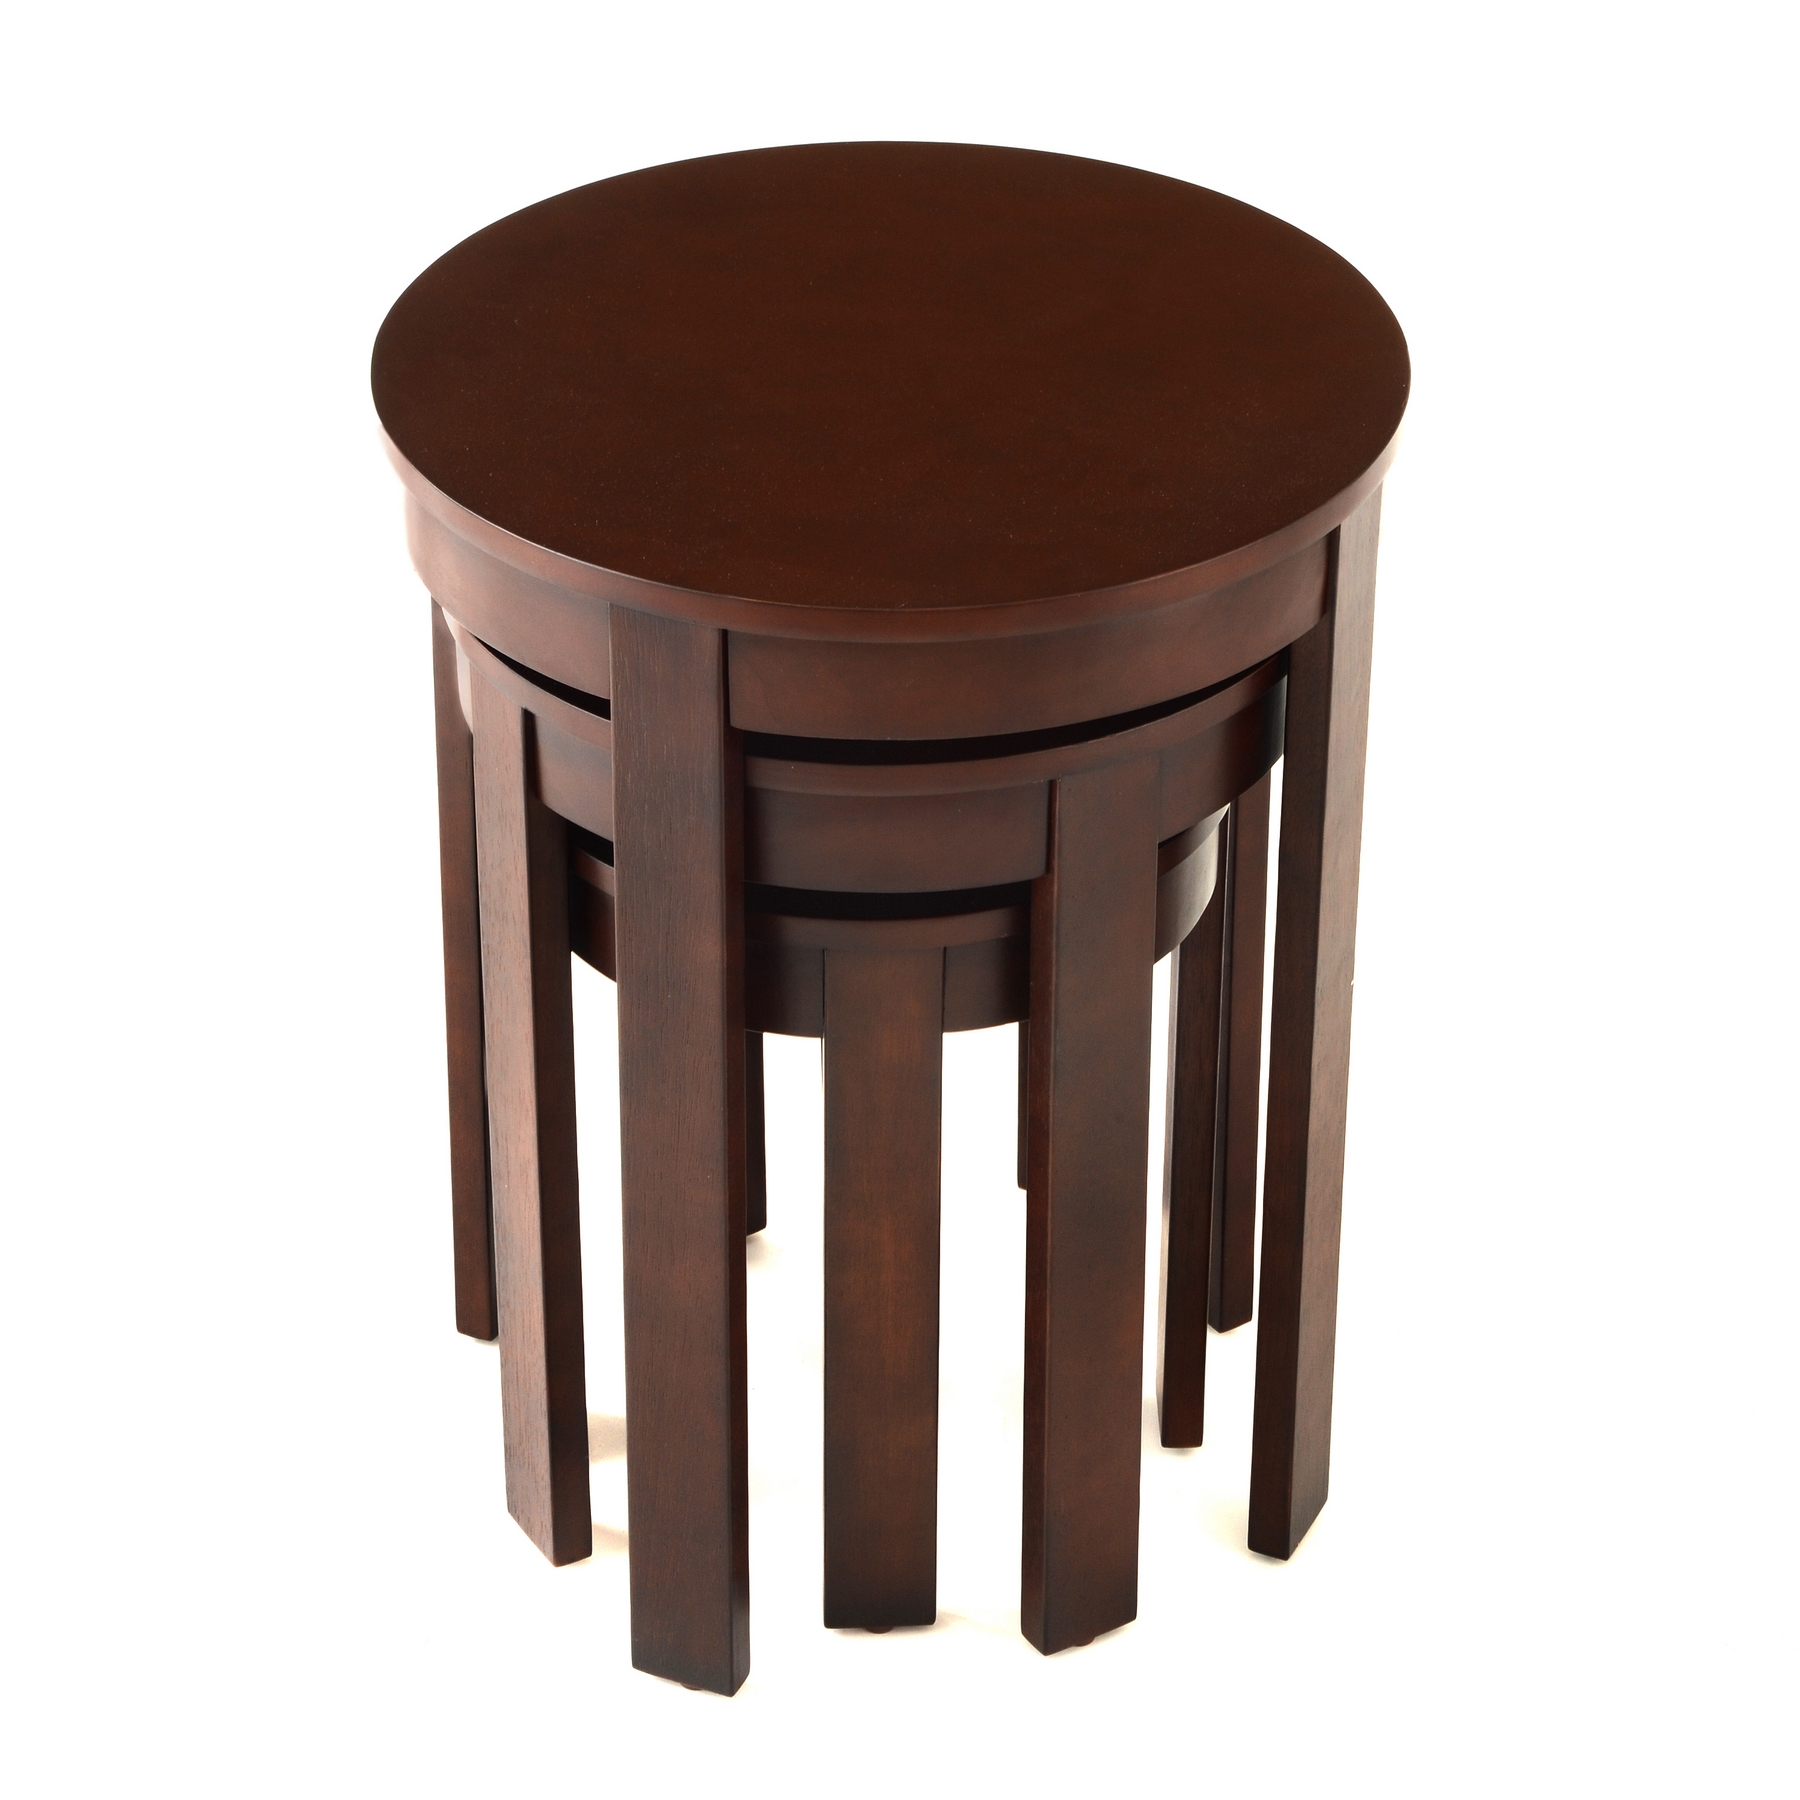 furniture elegant teak end table sets decorative piece espresso round nesting set space savers mini side for display planters vase home decoration accessory square legs accent